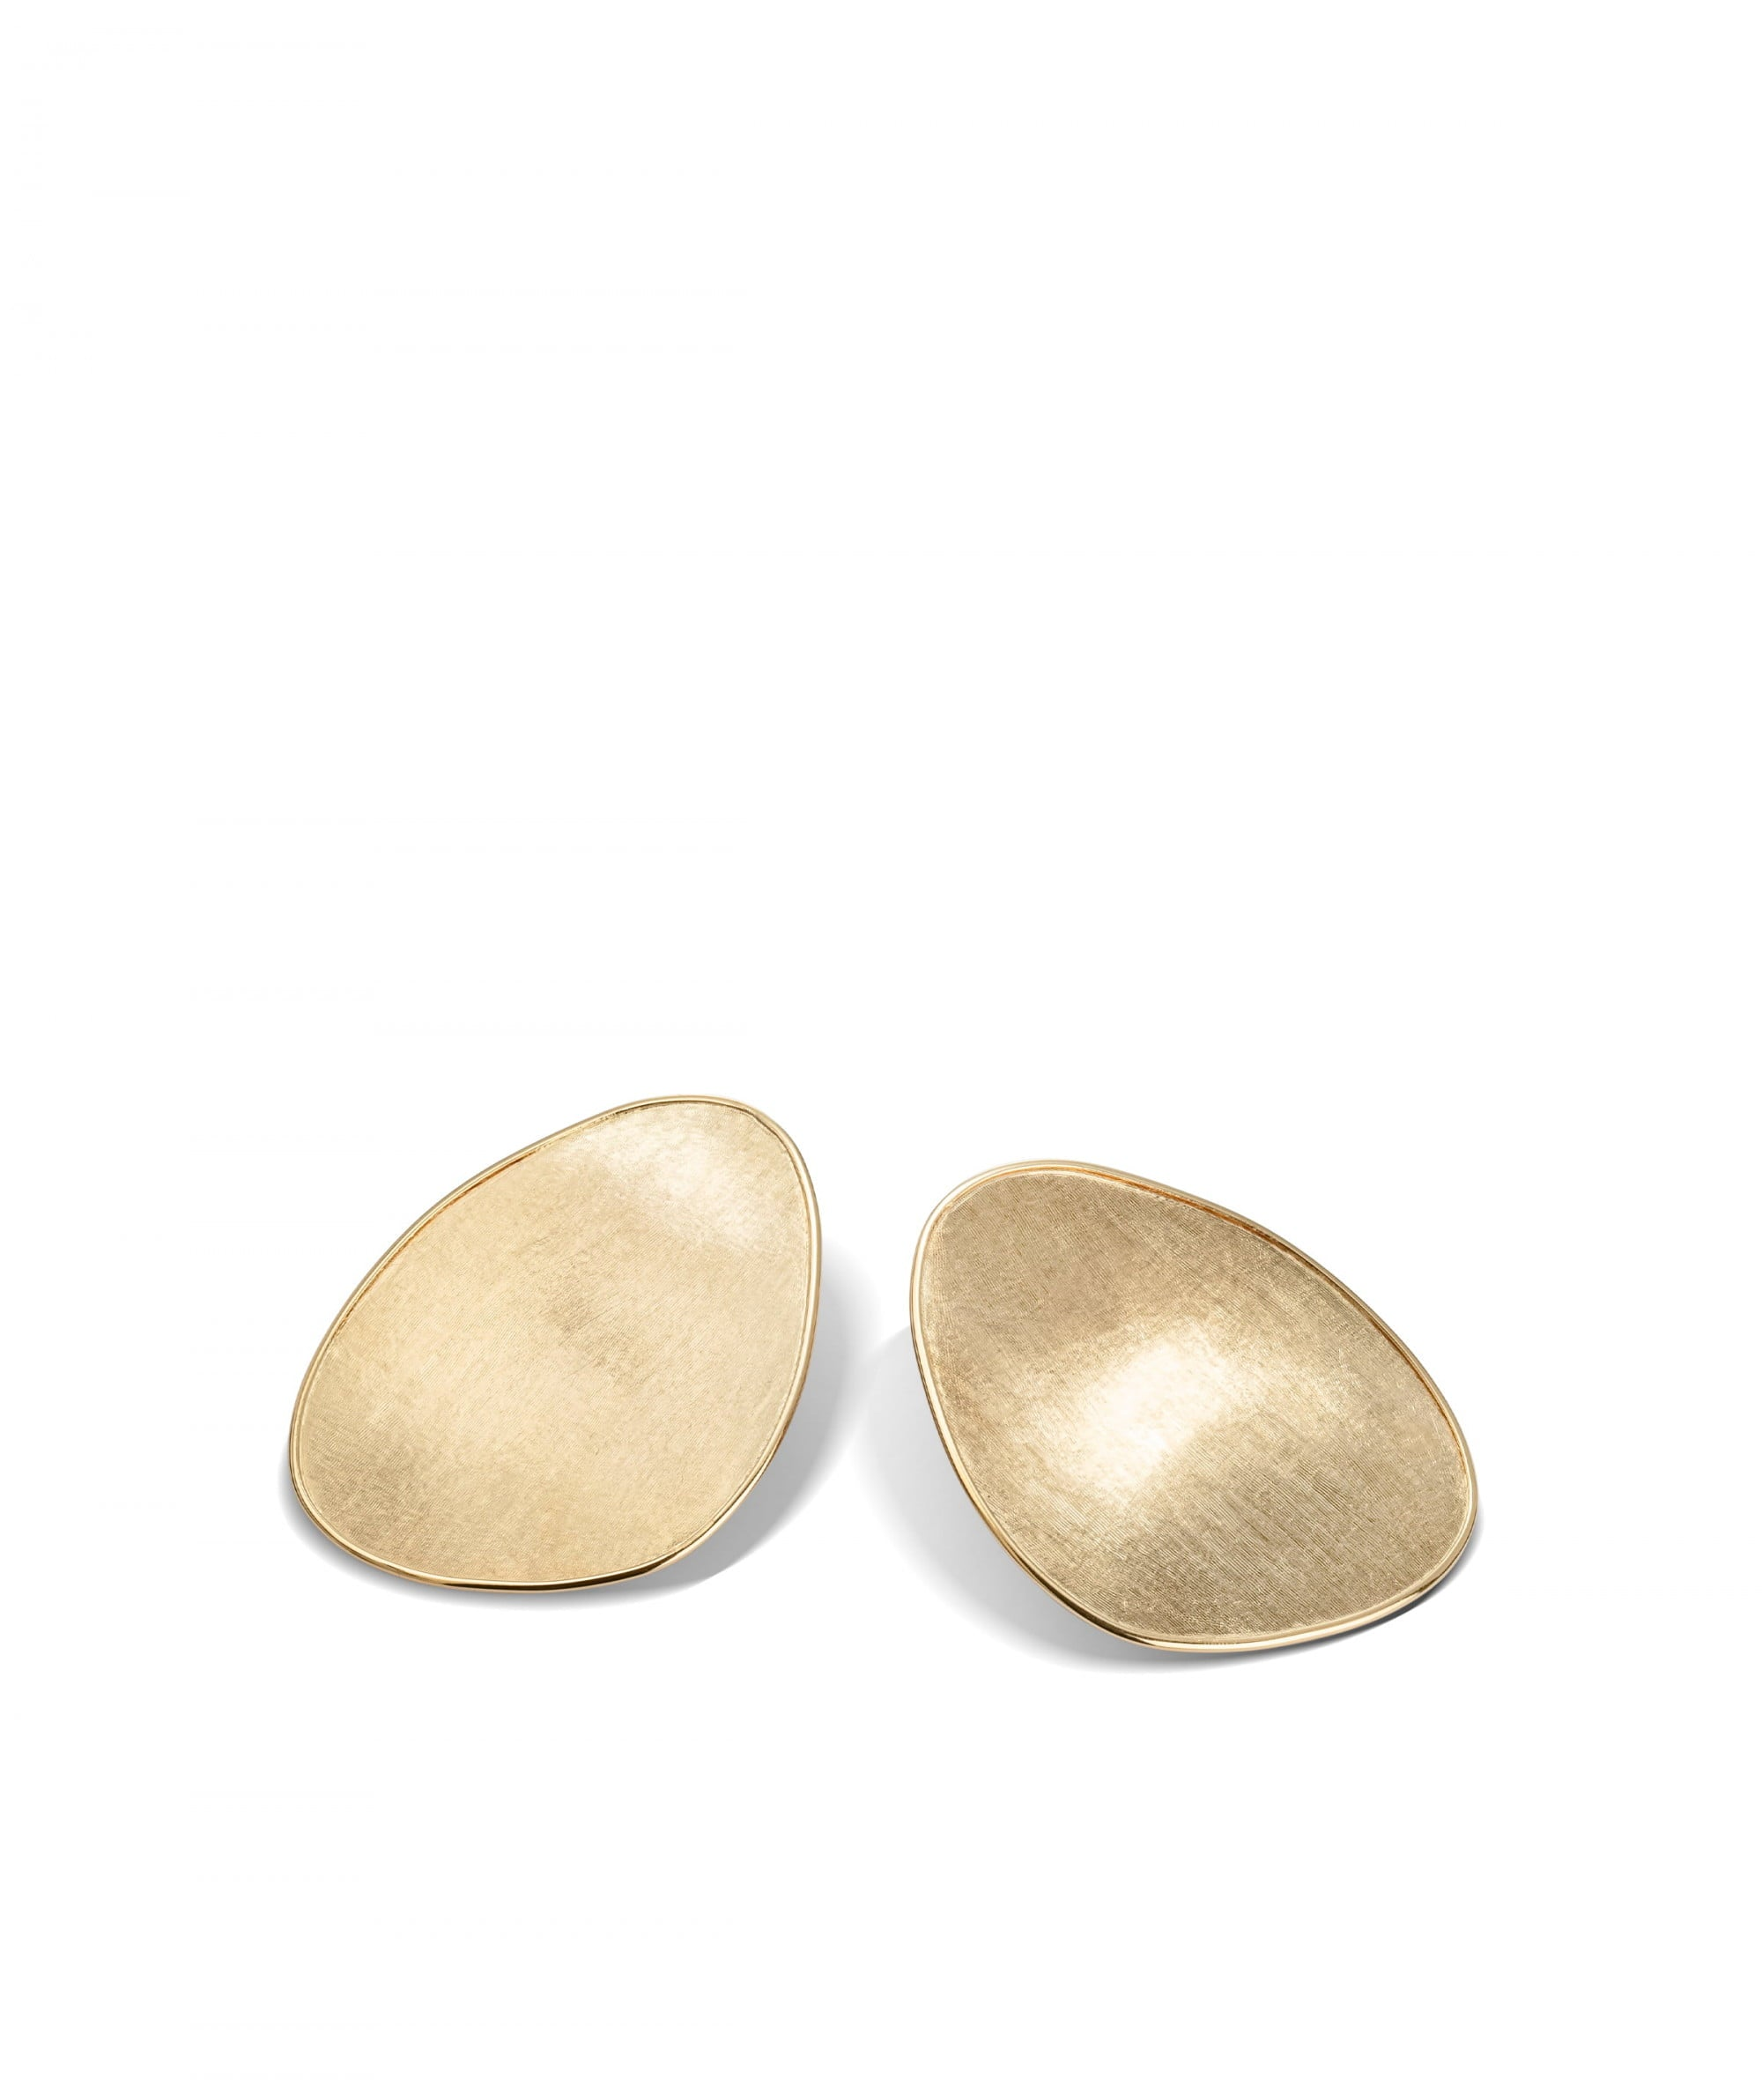 Lunaria Earrings in 18k Yellow Gold Stud Large - Orsini Jewellers NZ